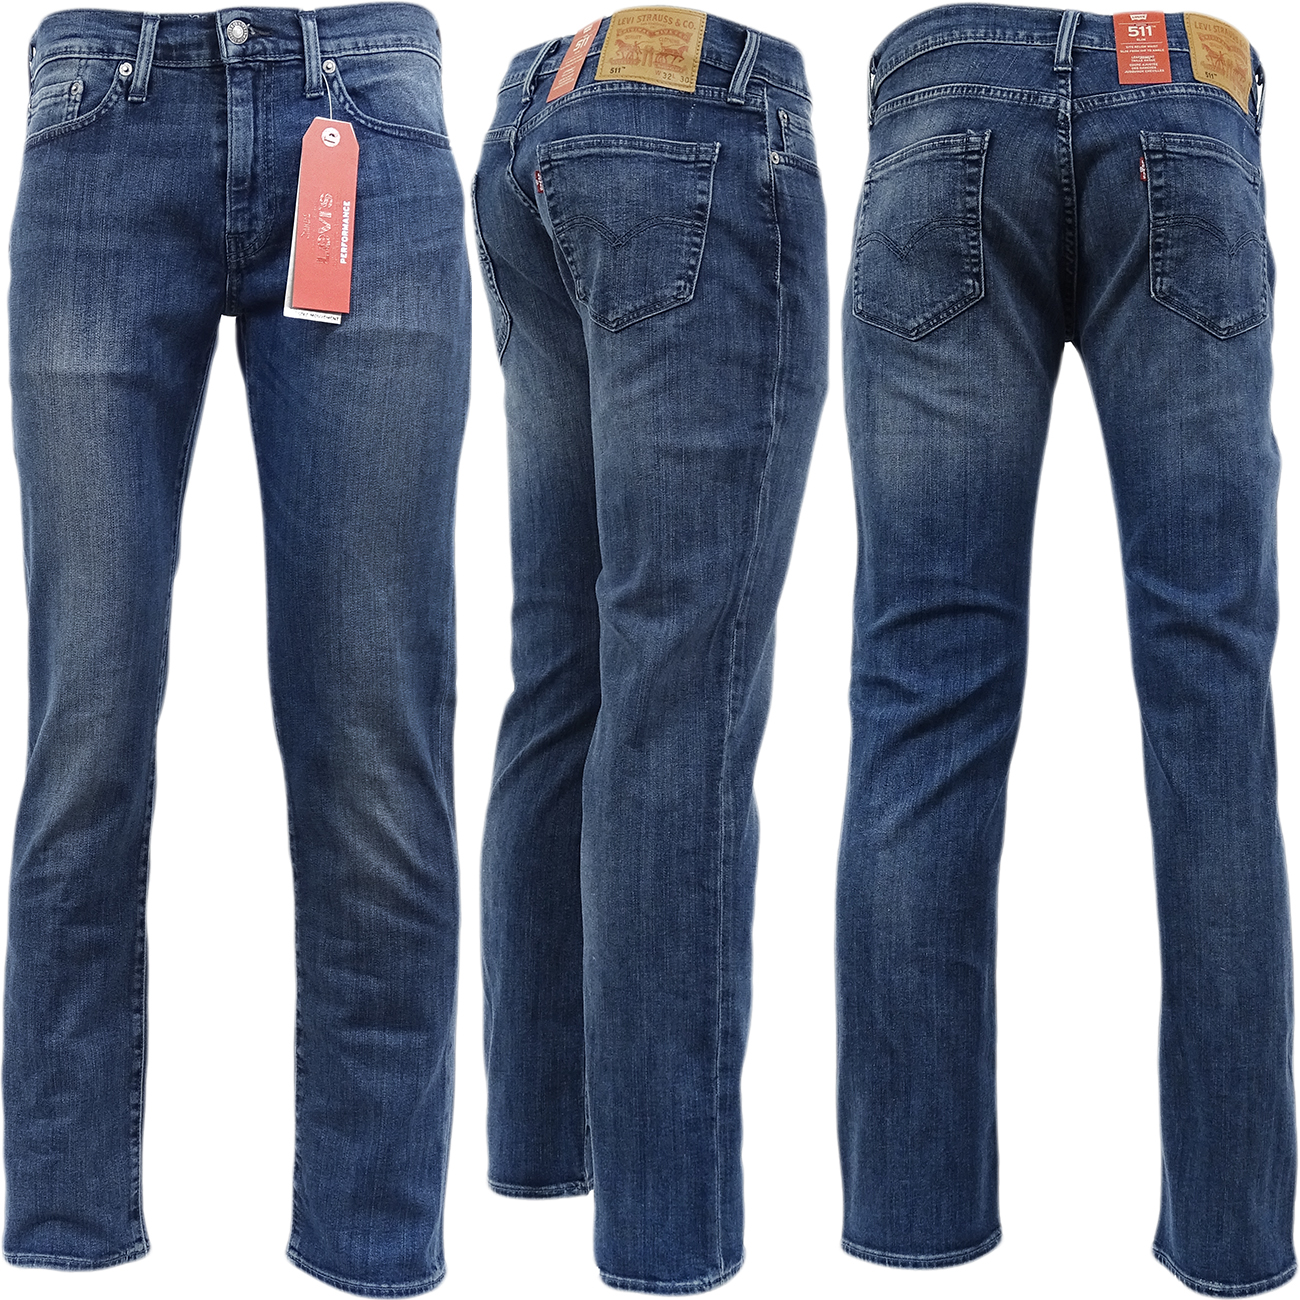 mens levis jean 511 slim fit 39 amor 39 denim pant. Black Bedroom Furniture Sets. Home Design Ideas